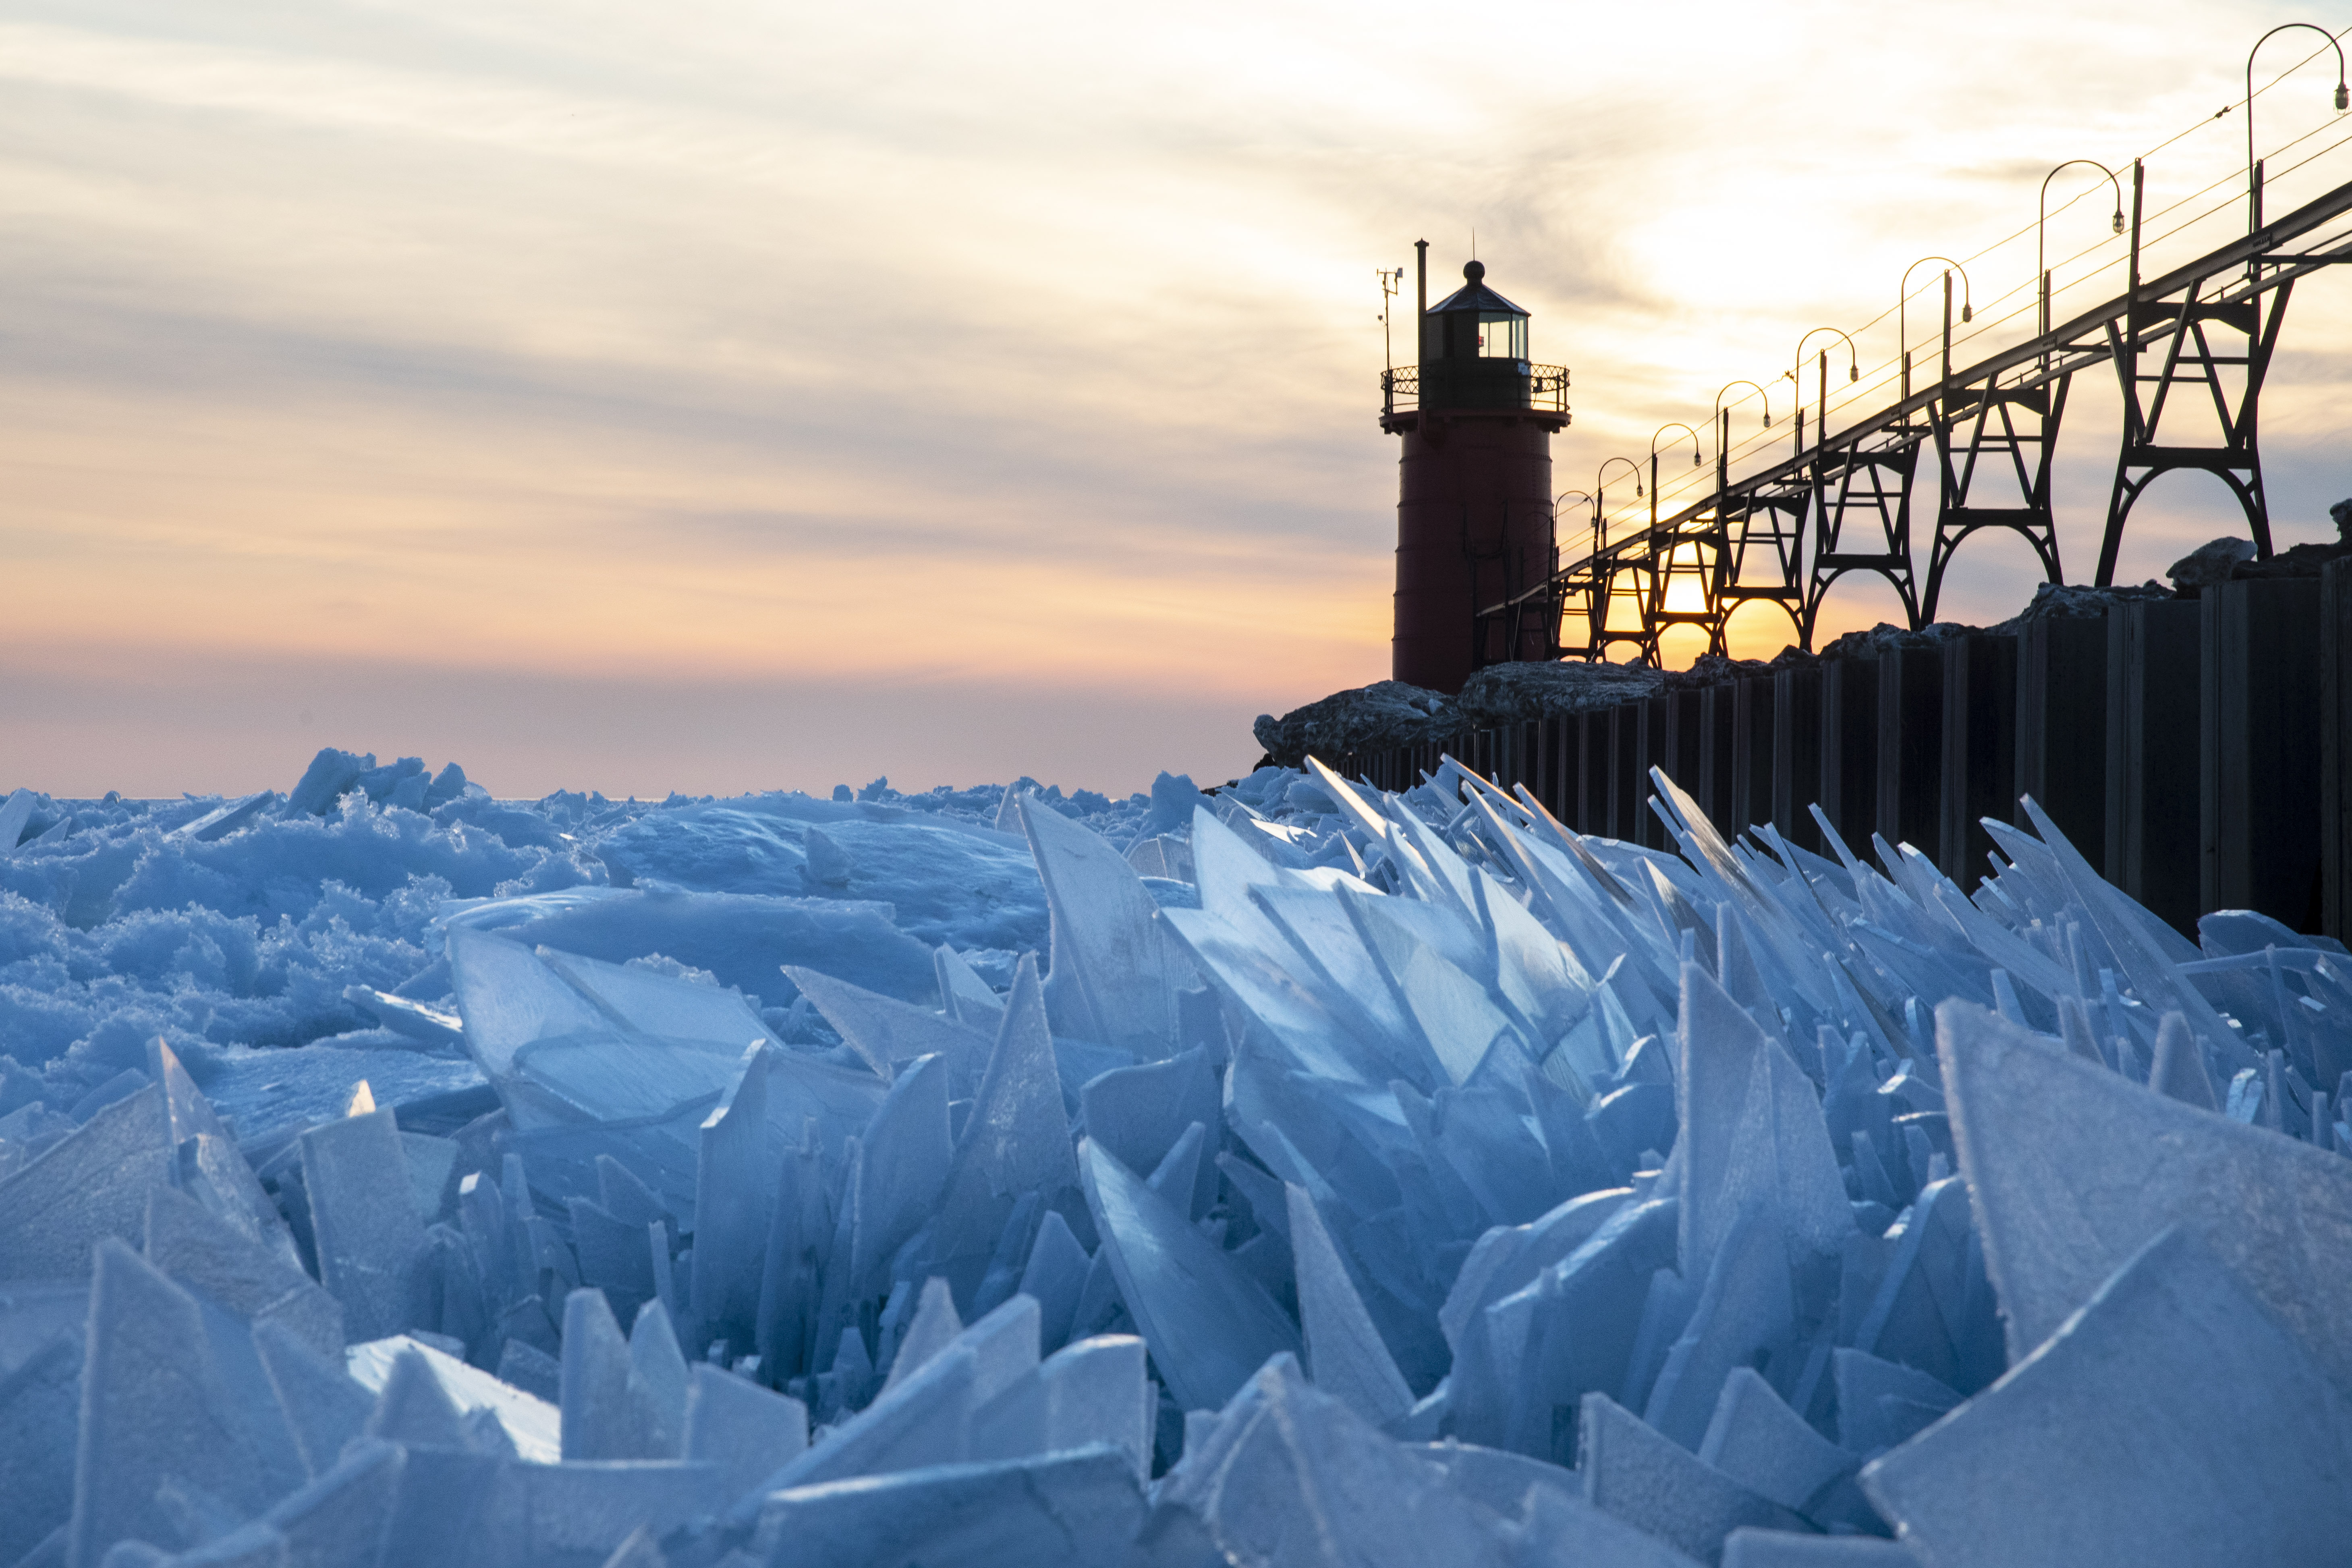 Lake Michigan Covered In Beautiful Ice Shards As Winter Ice